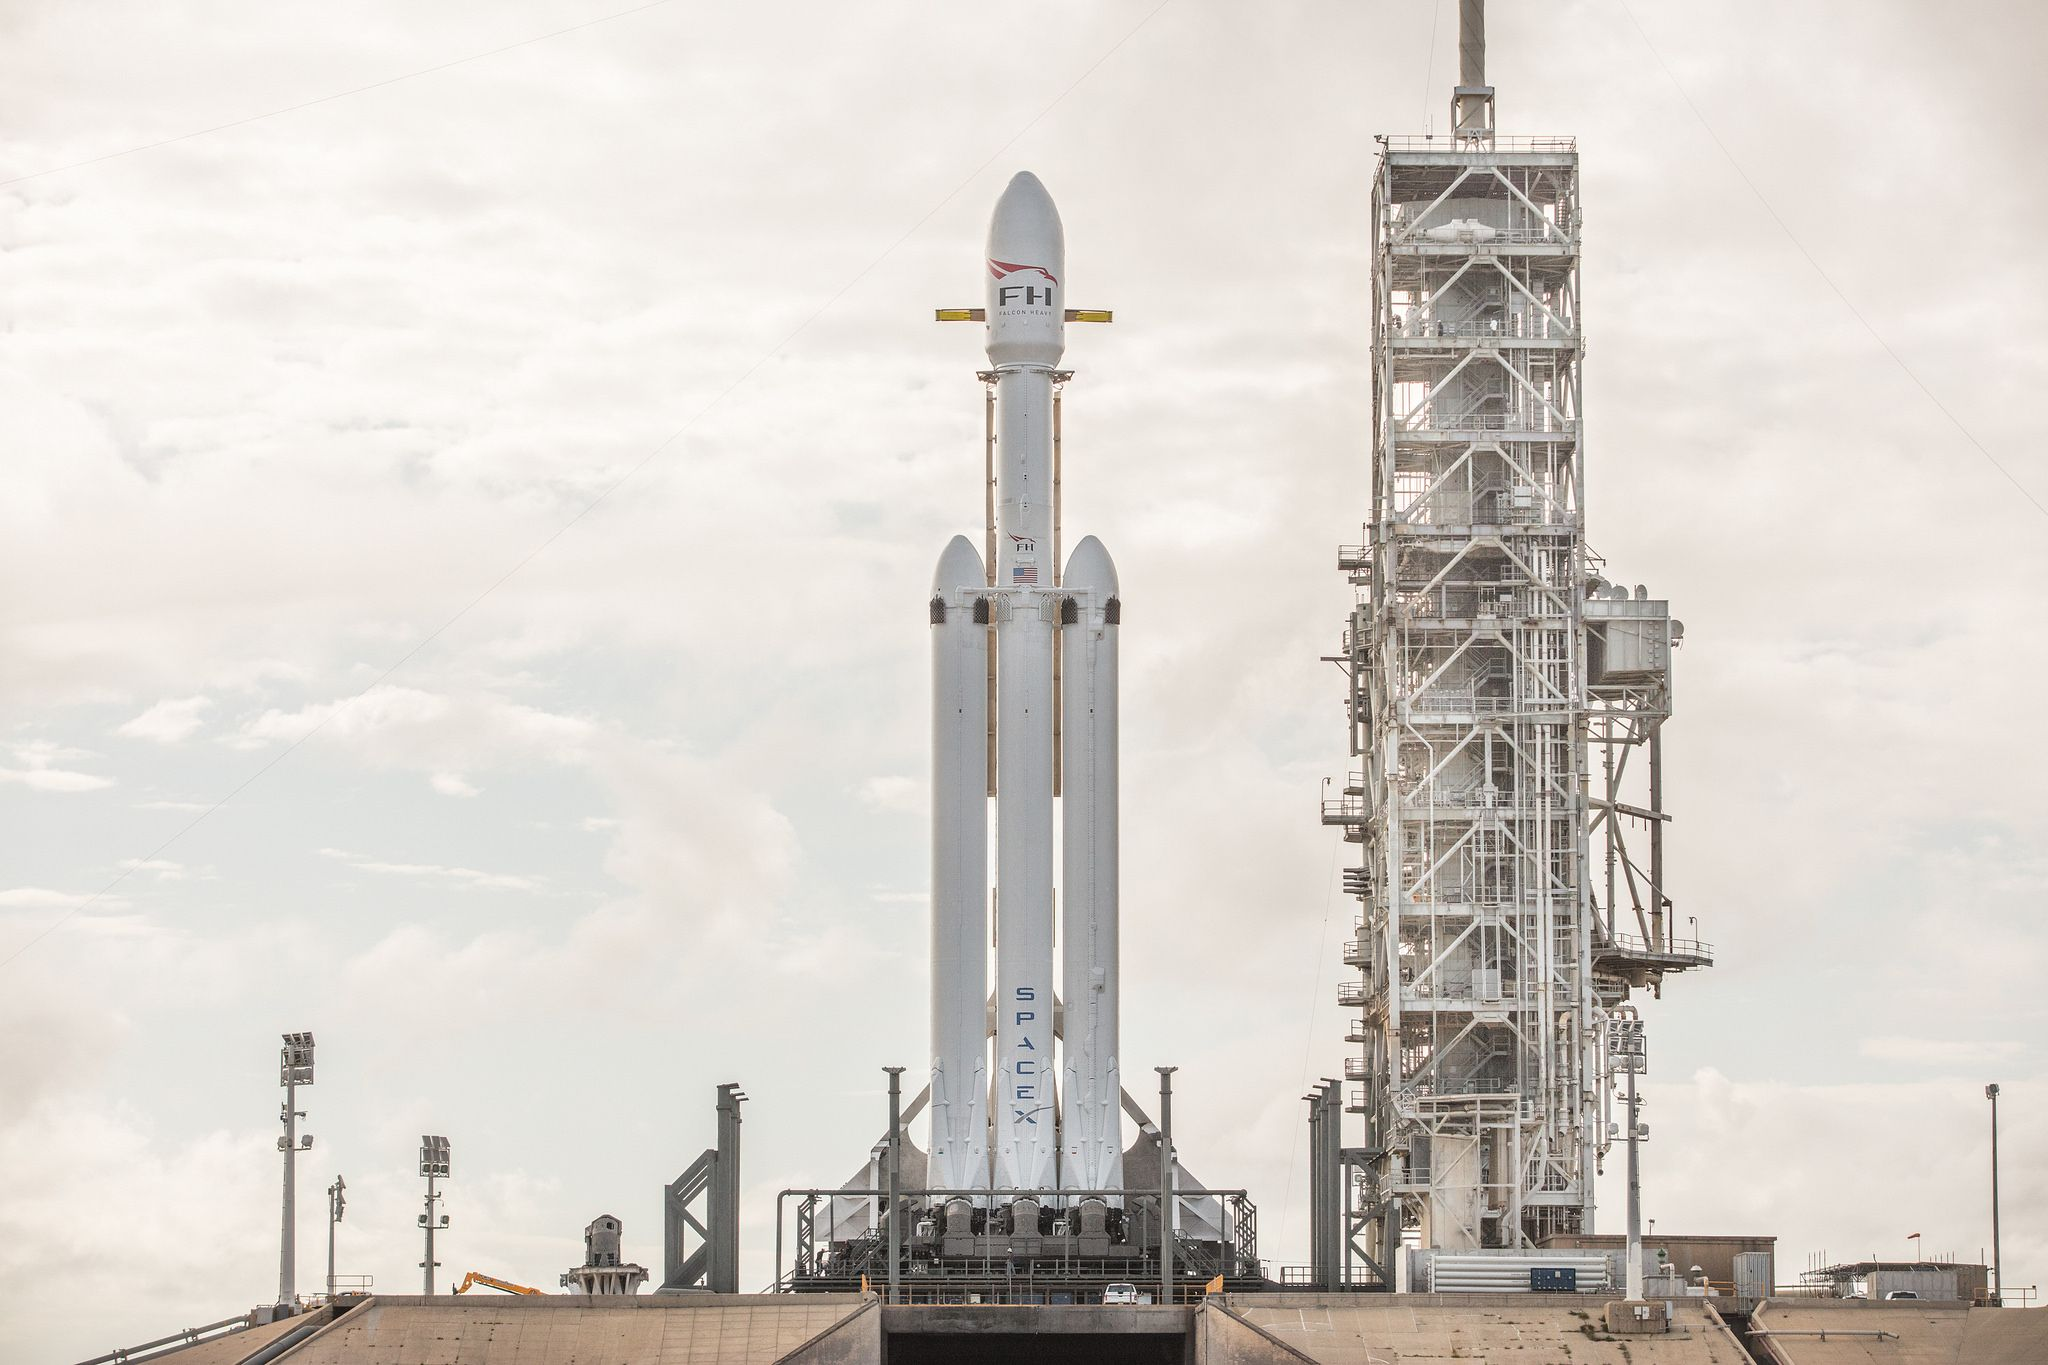 1_22_Falcon Heavy